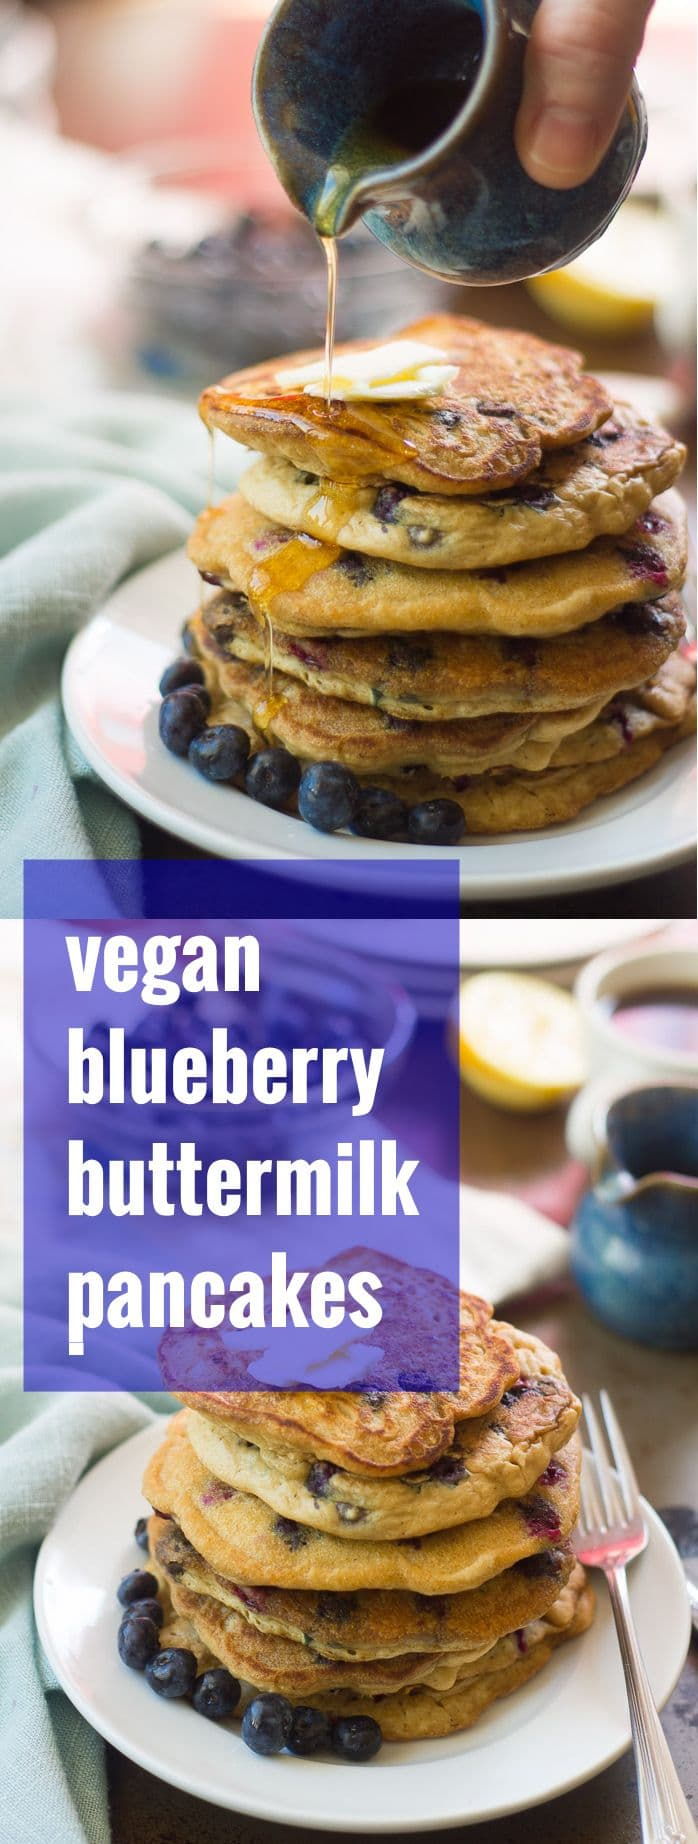 Vegan Blueberry Buttermilk Pancakes